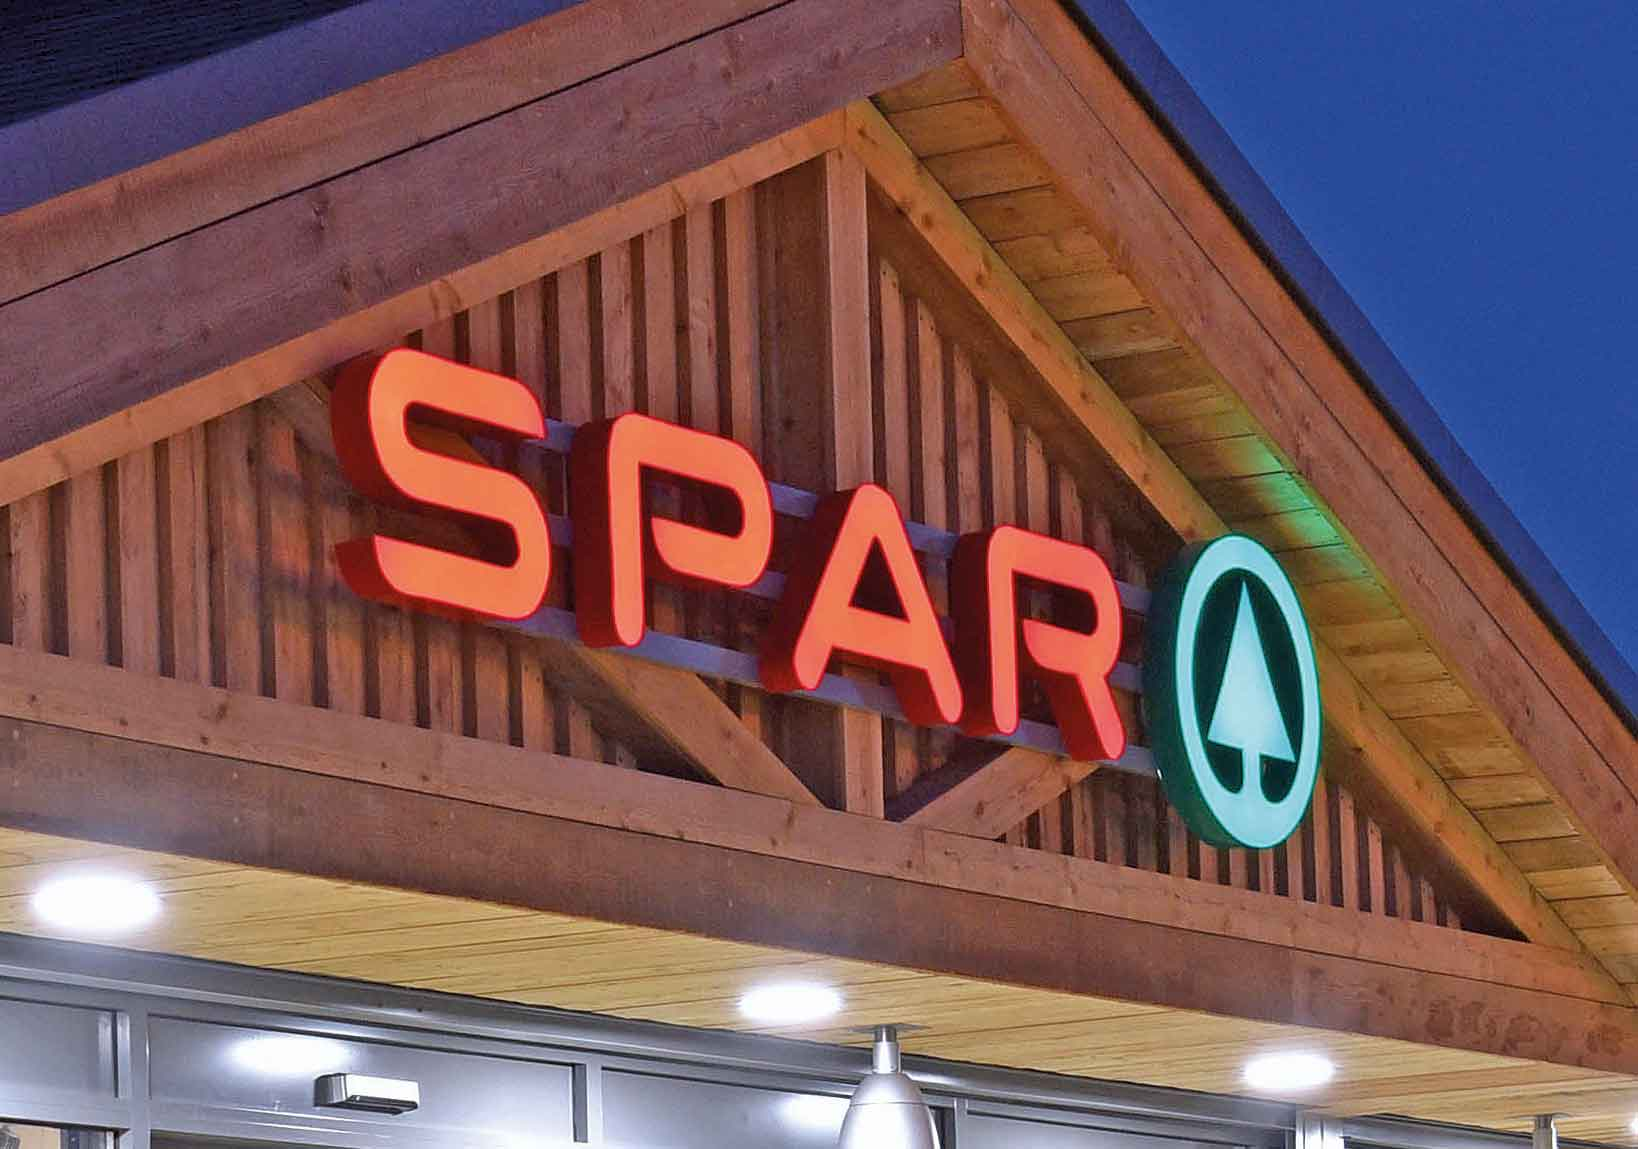 Pledge to support Spar stores